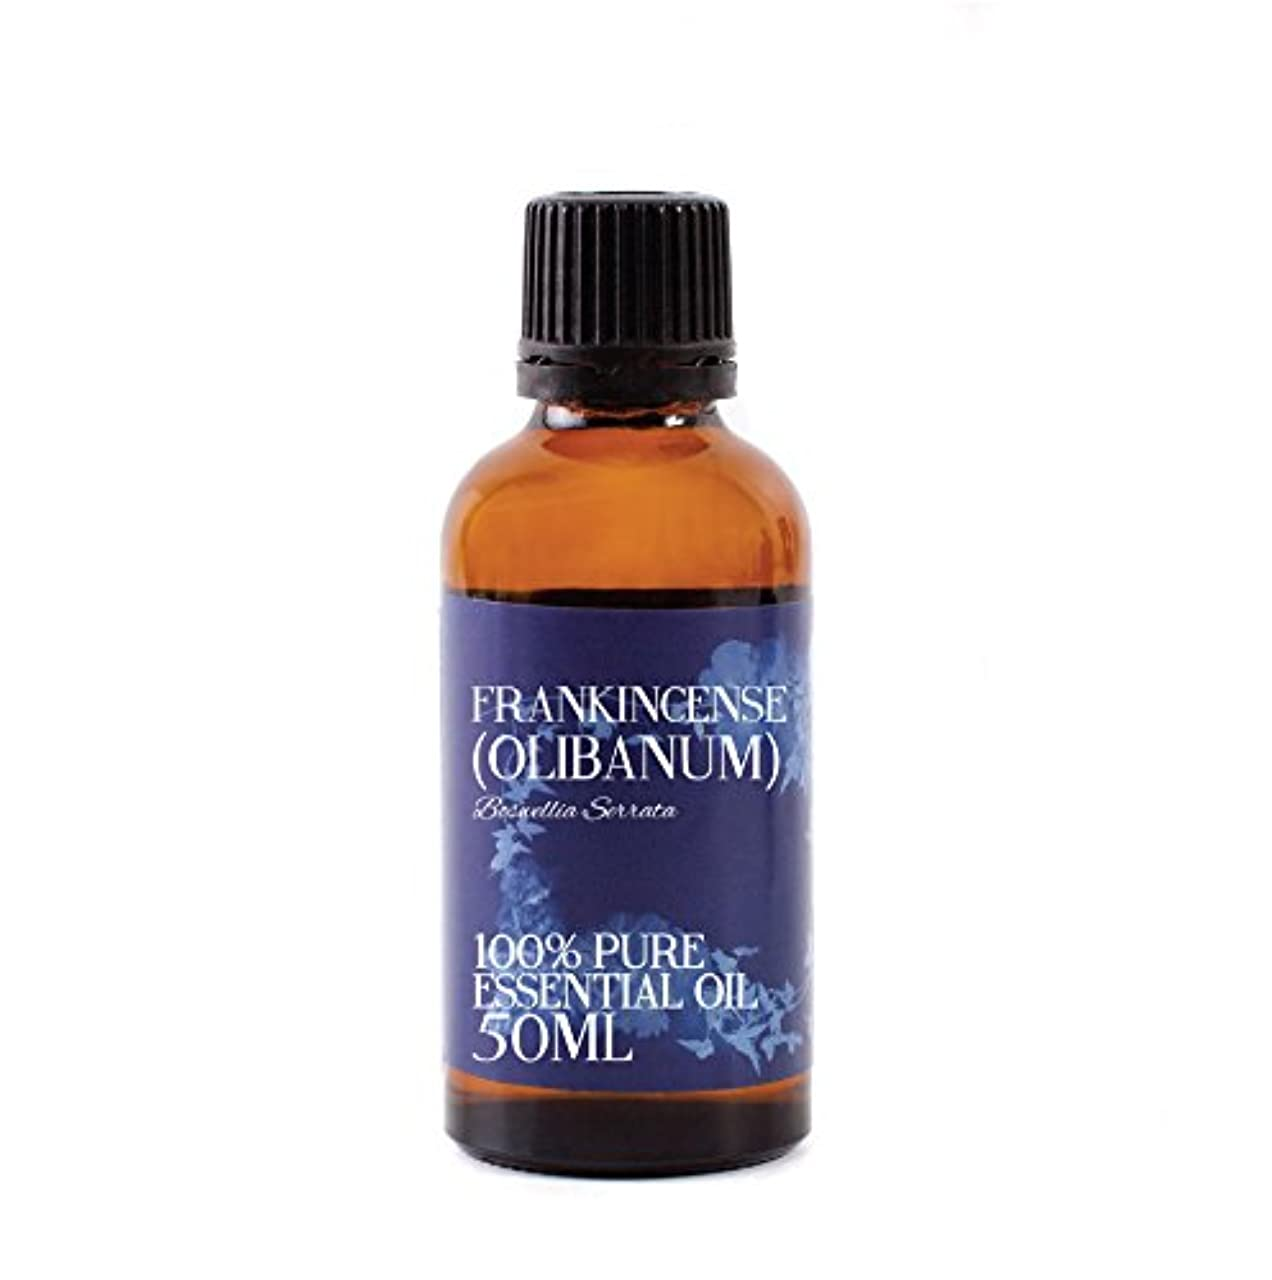 取り出す女将ハンマーMystic Moments | Frankincense Olibanum Essential Oil - 50ml - 100% Pure